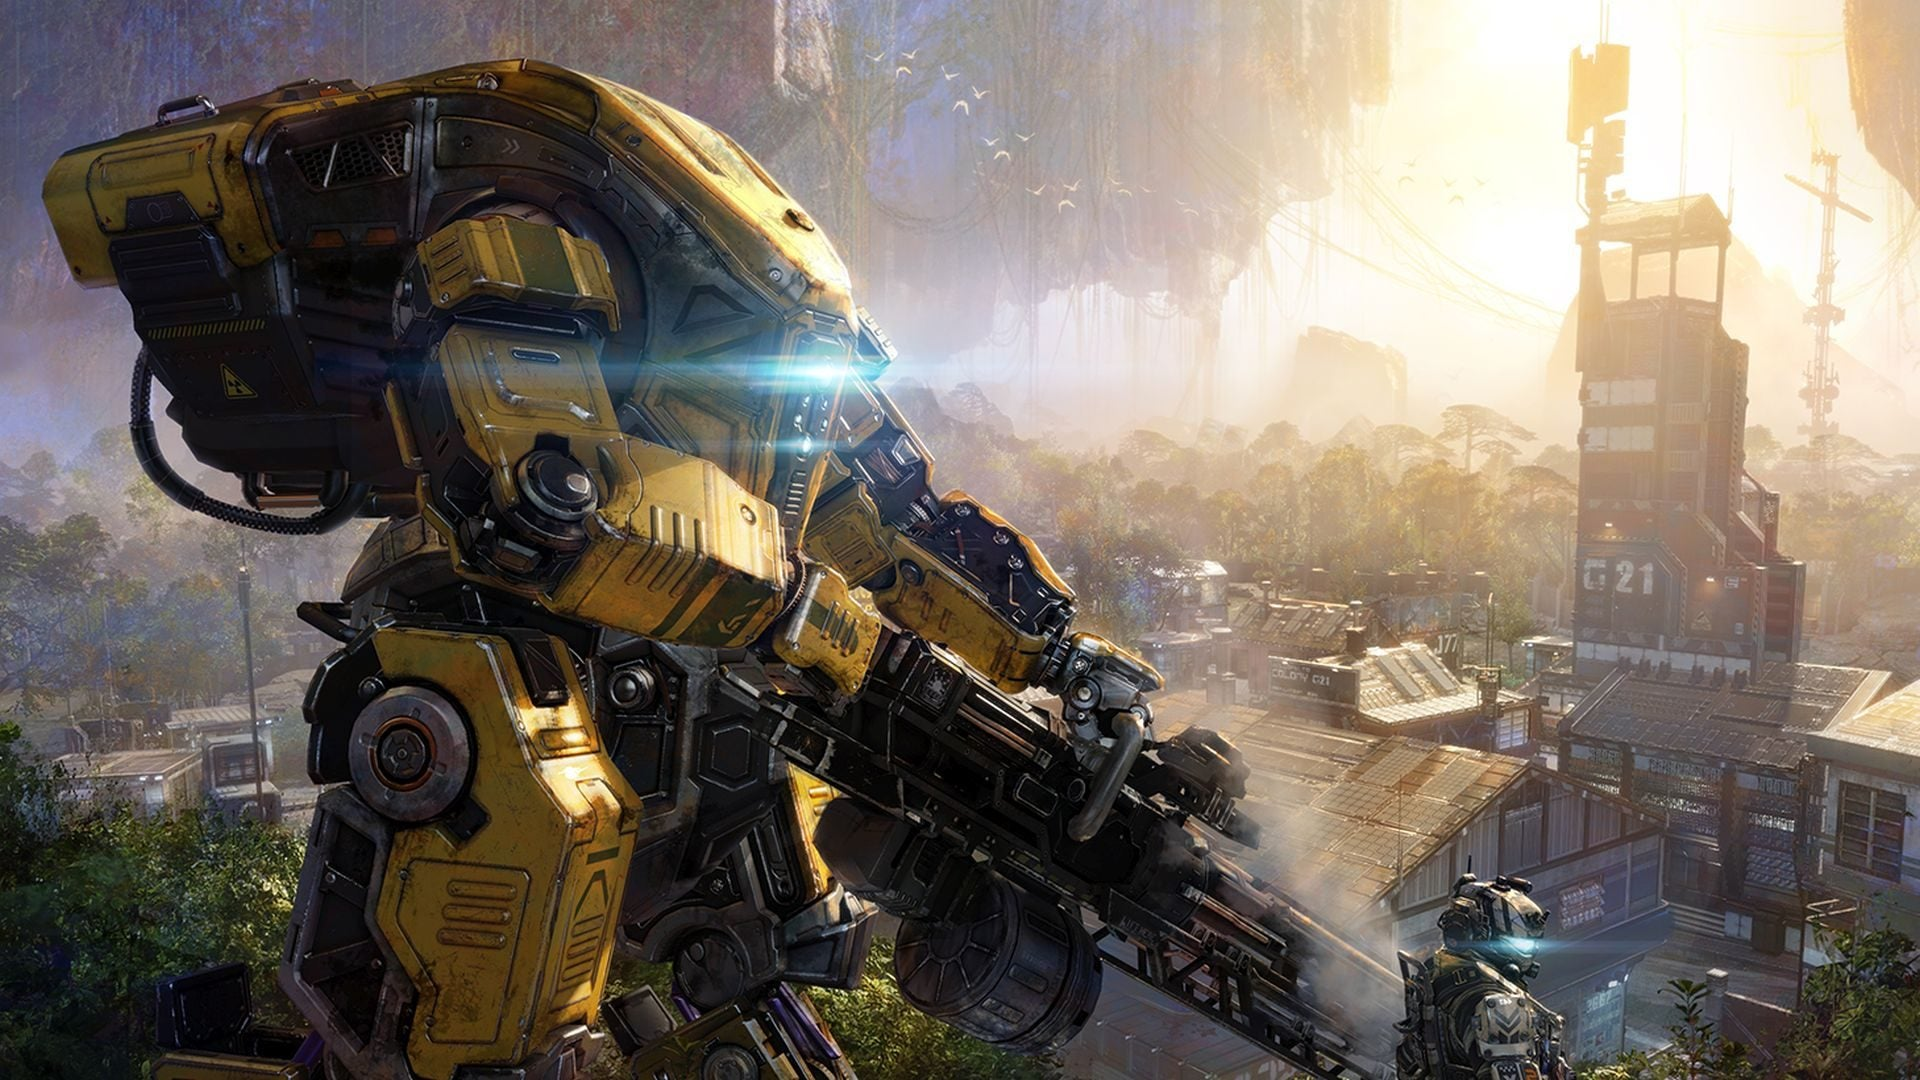 Titanfall 3: EA confirms a new game is in development